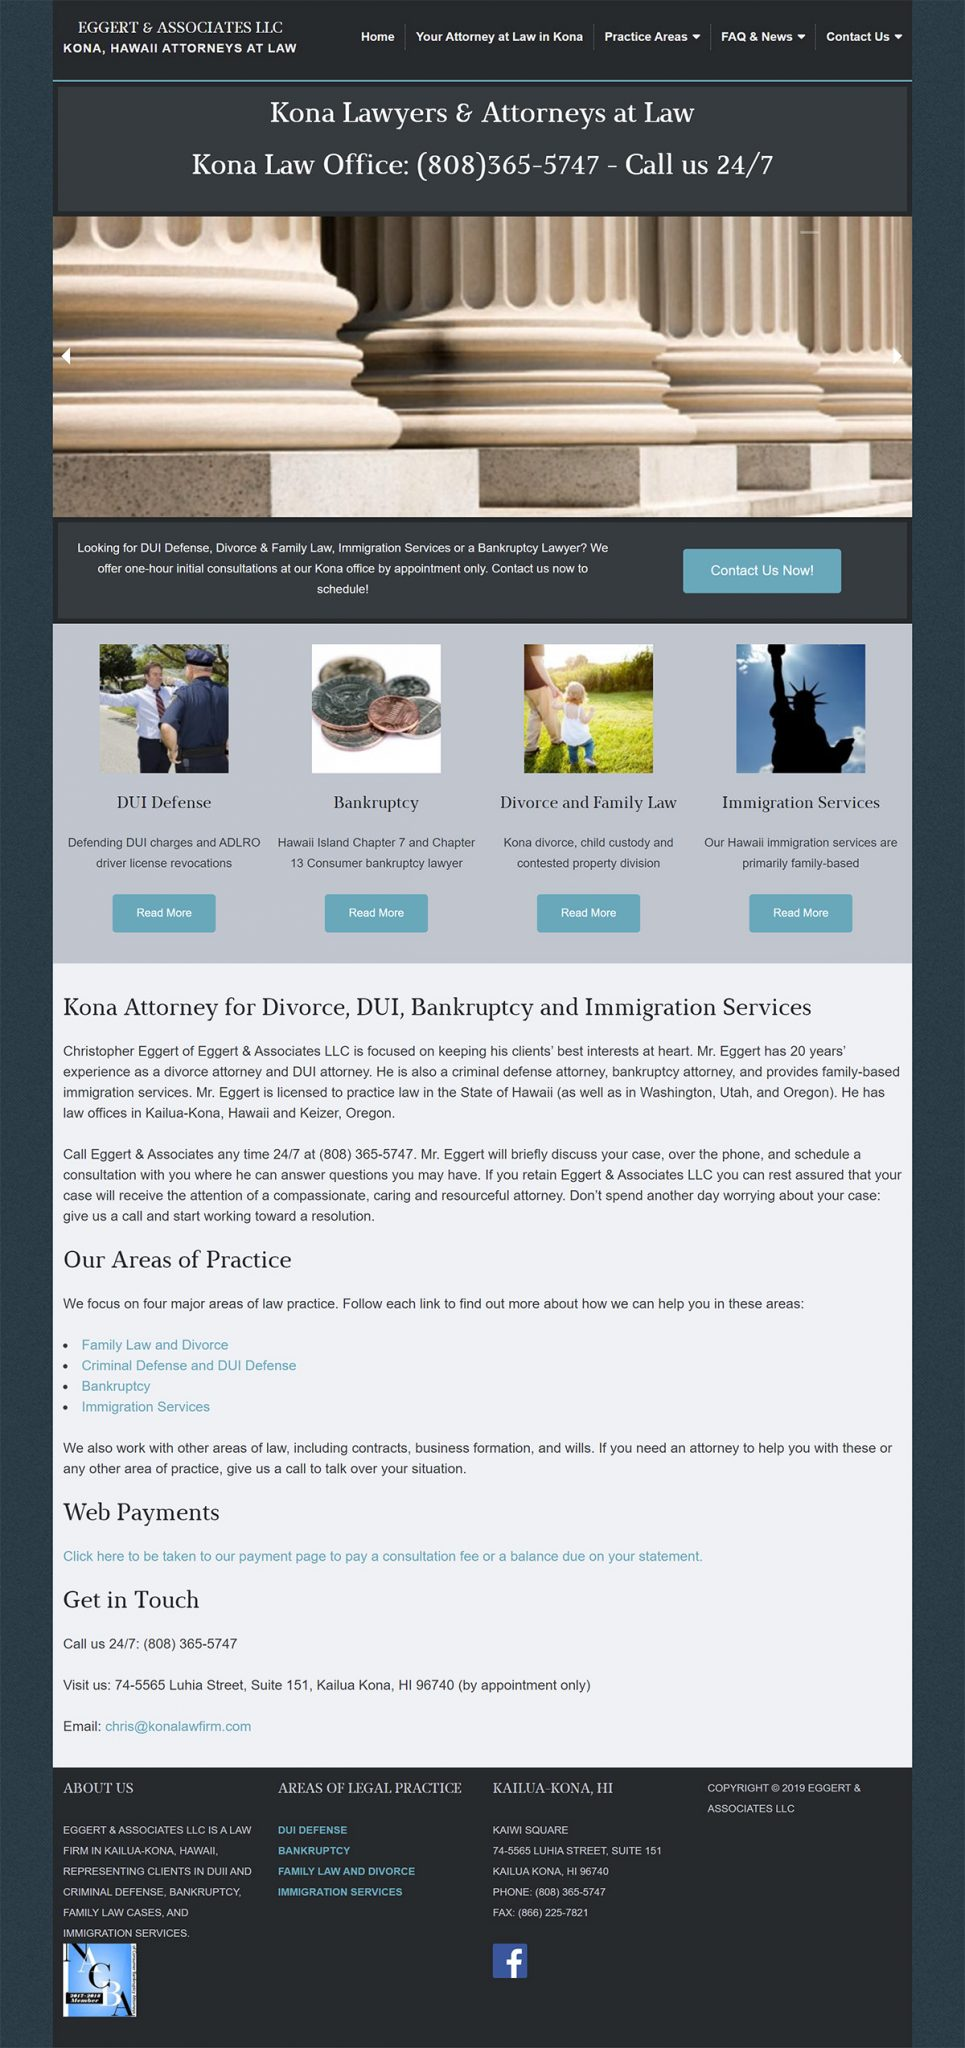 Eggert & Associates Kona Home page before redesign